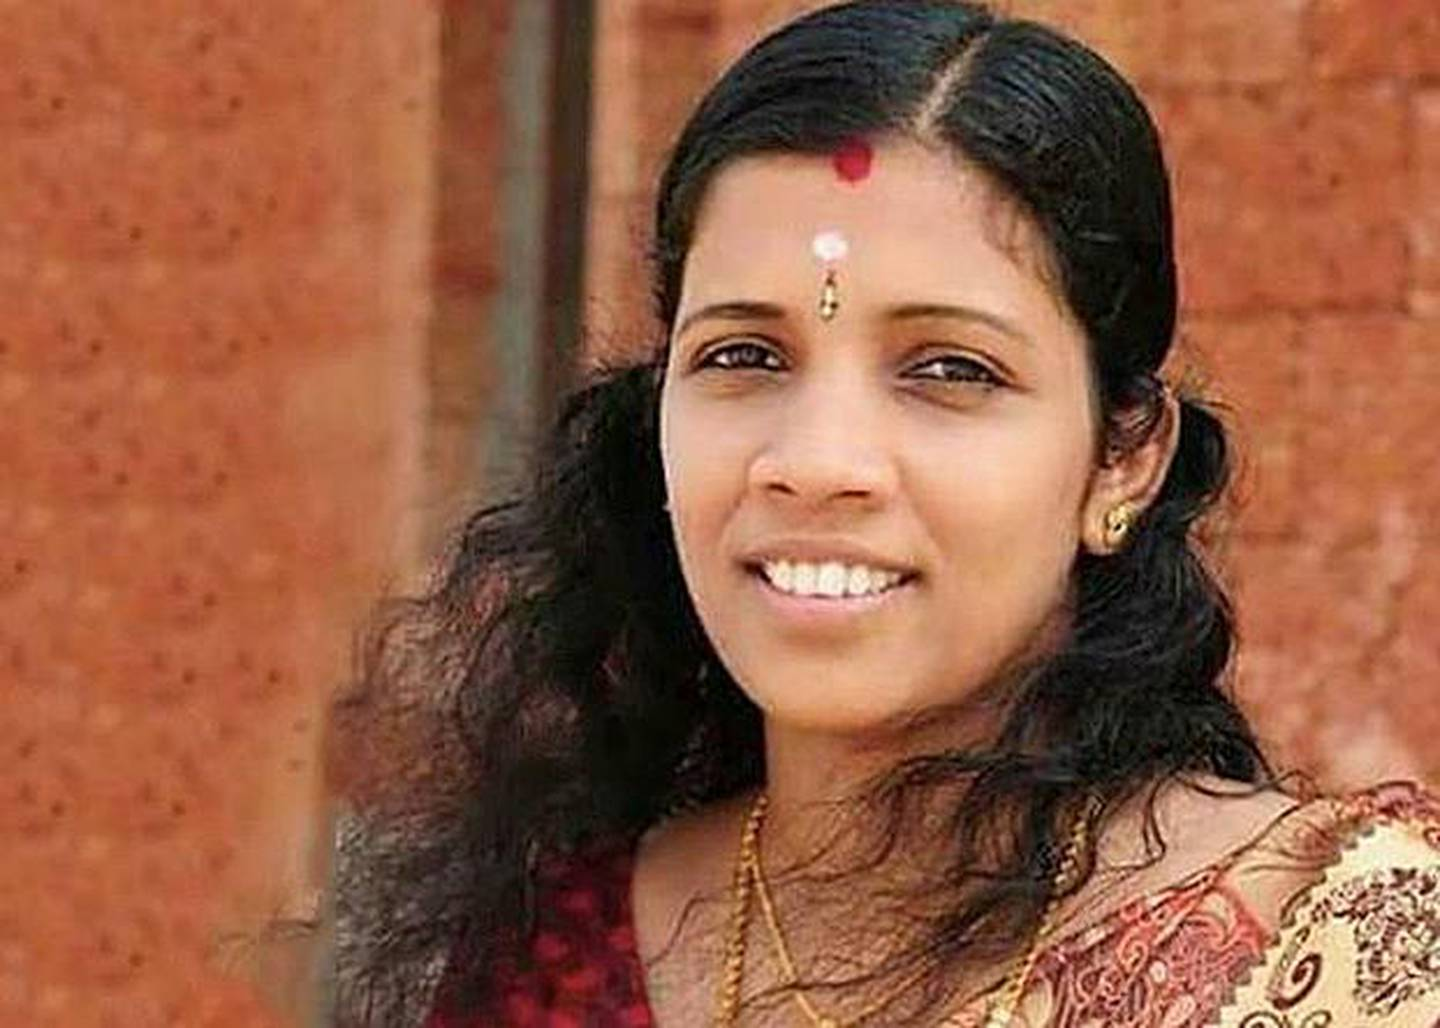 Lini Puthussery, nurse who died in Kerala two years ago treating patients affected by the Nipah virus. Her memory remains even as Malayalees battle the coronavirus. courtesy: Lini Puthissery face book